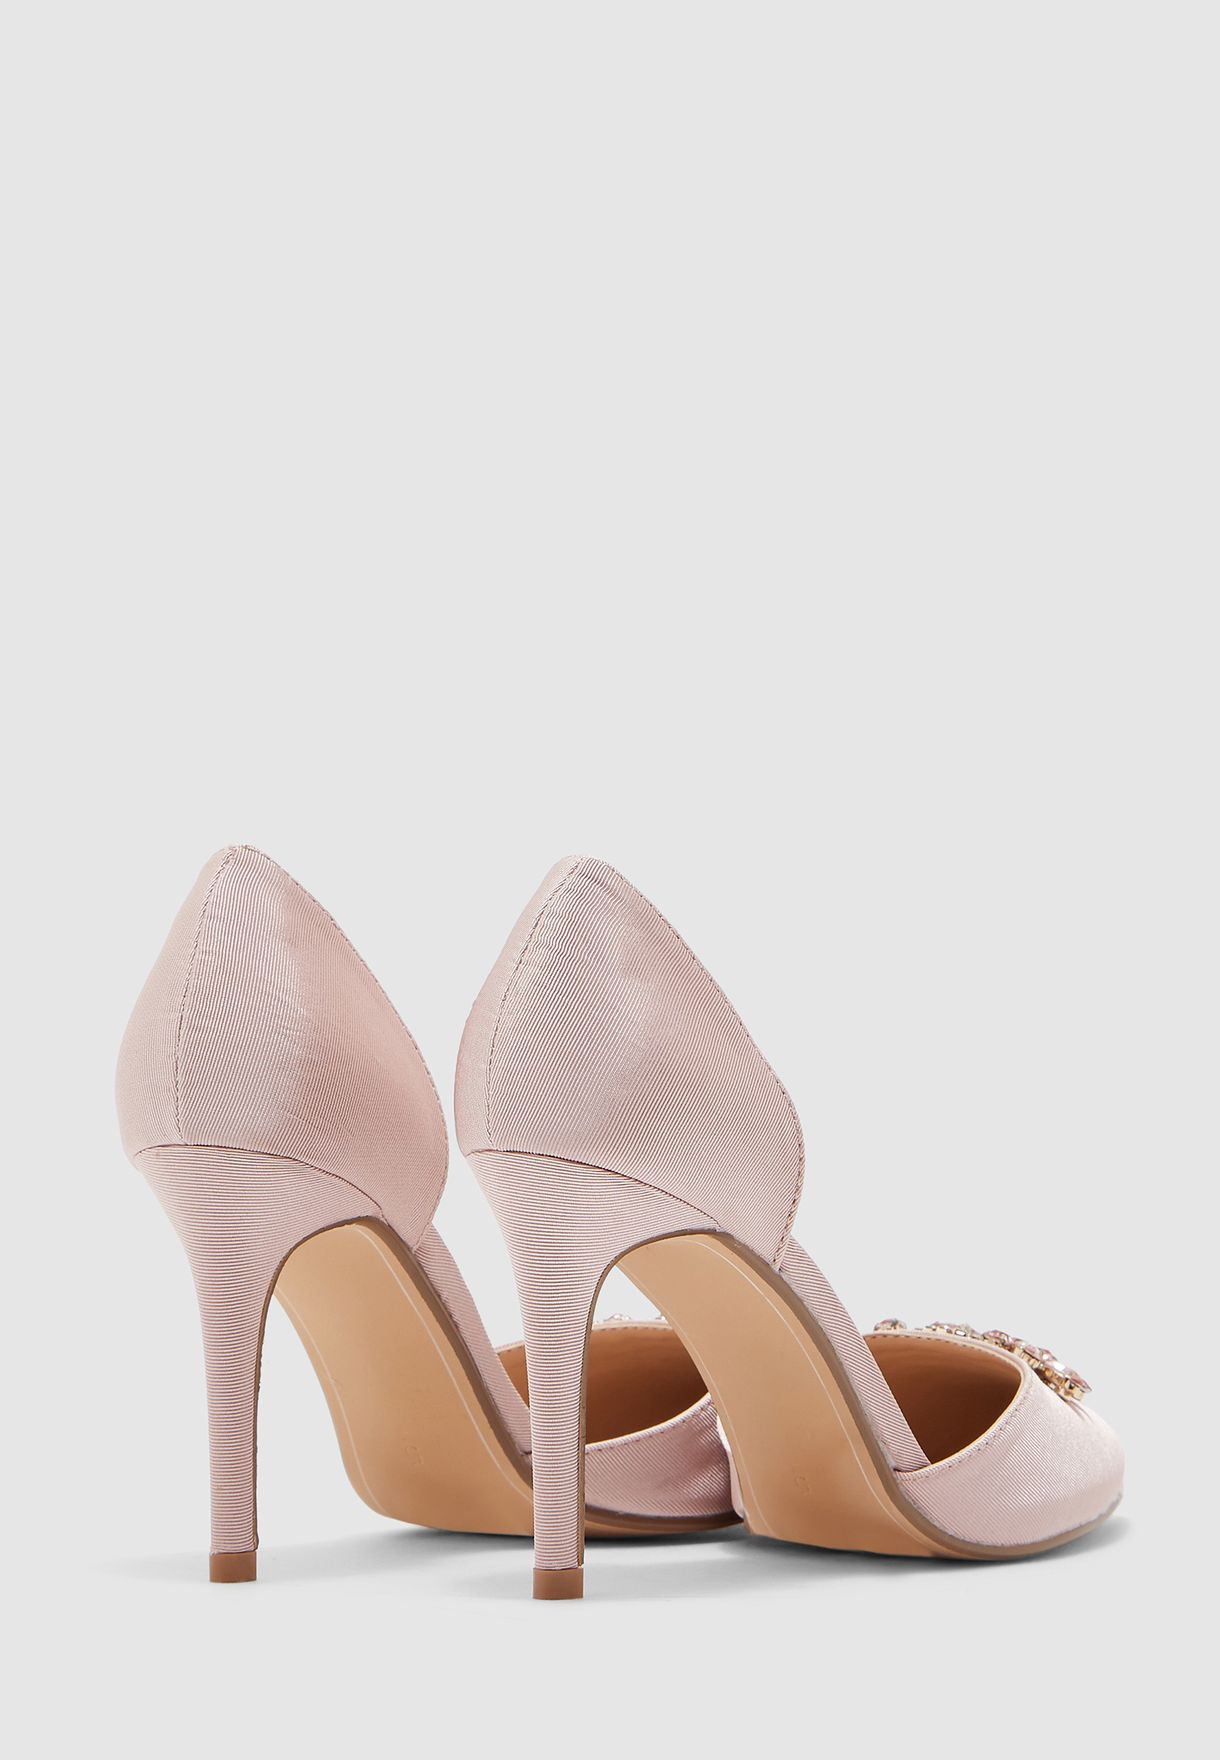 Graciella Jewel Trim Pump